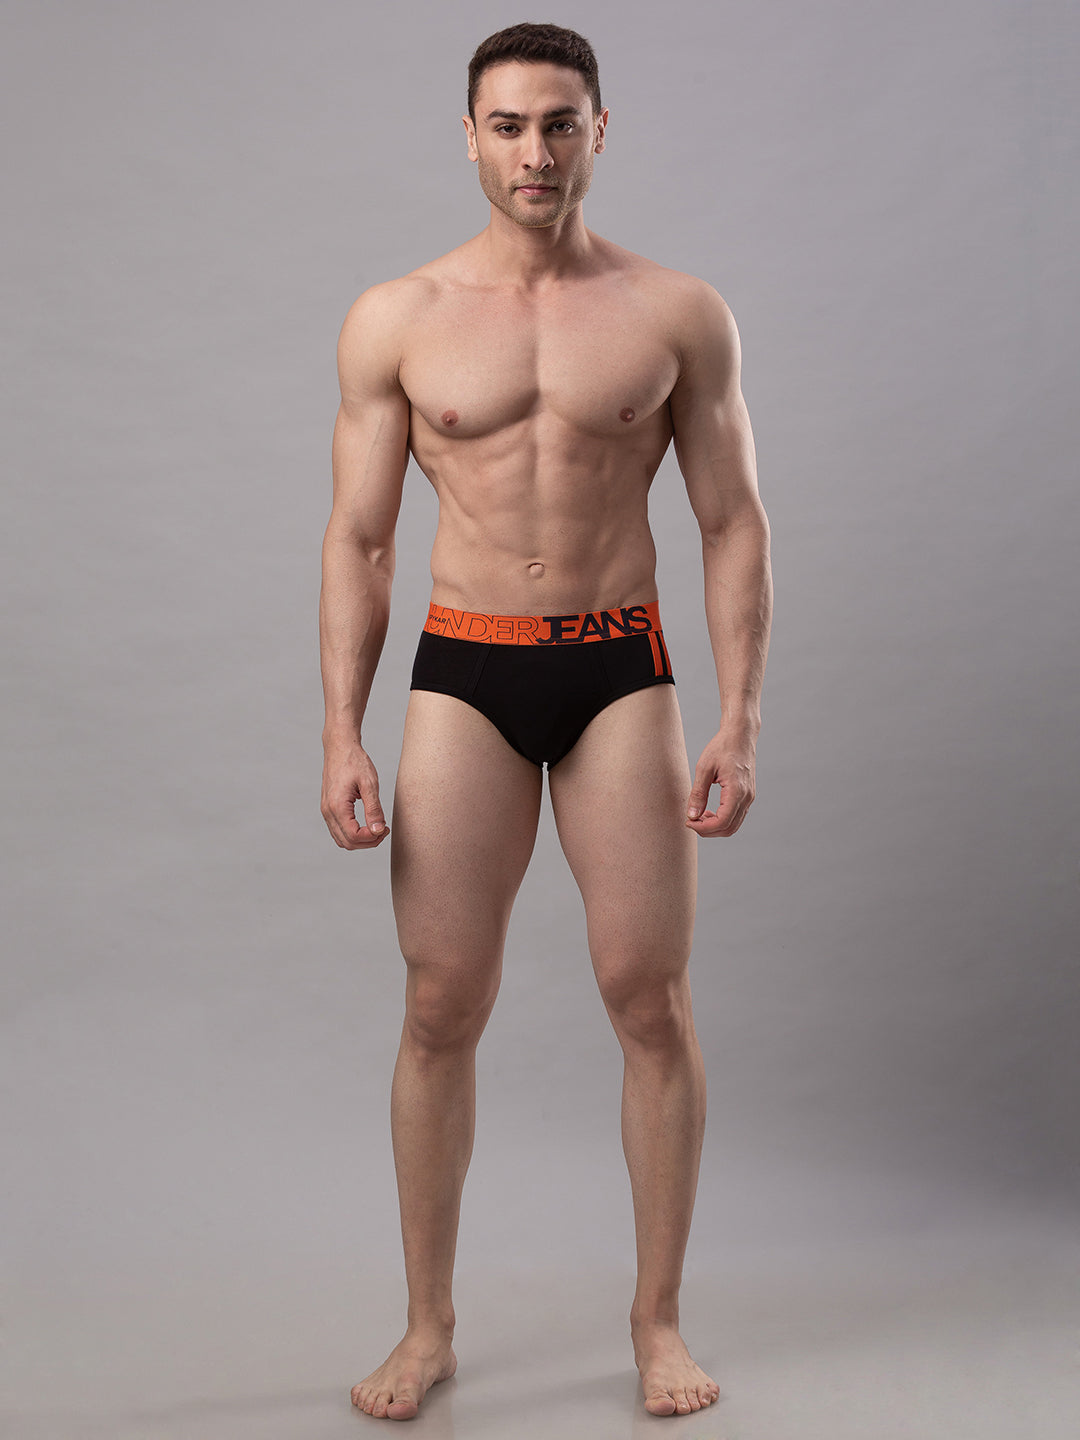 Underjeans Black Cotton Brief